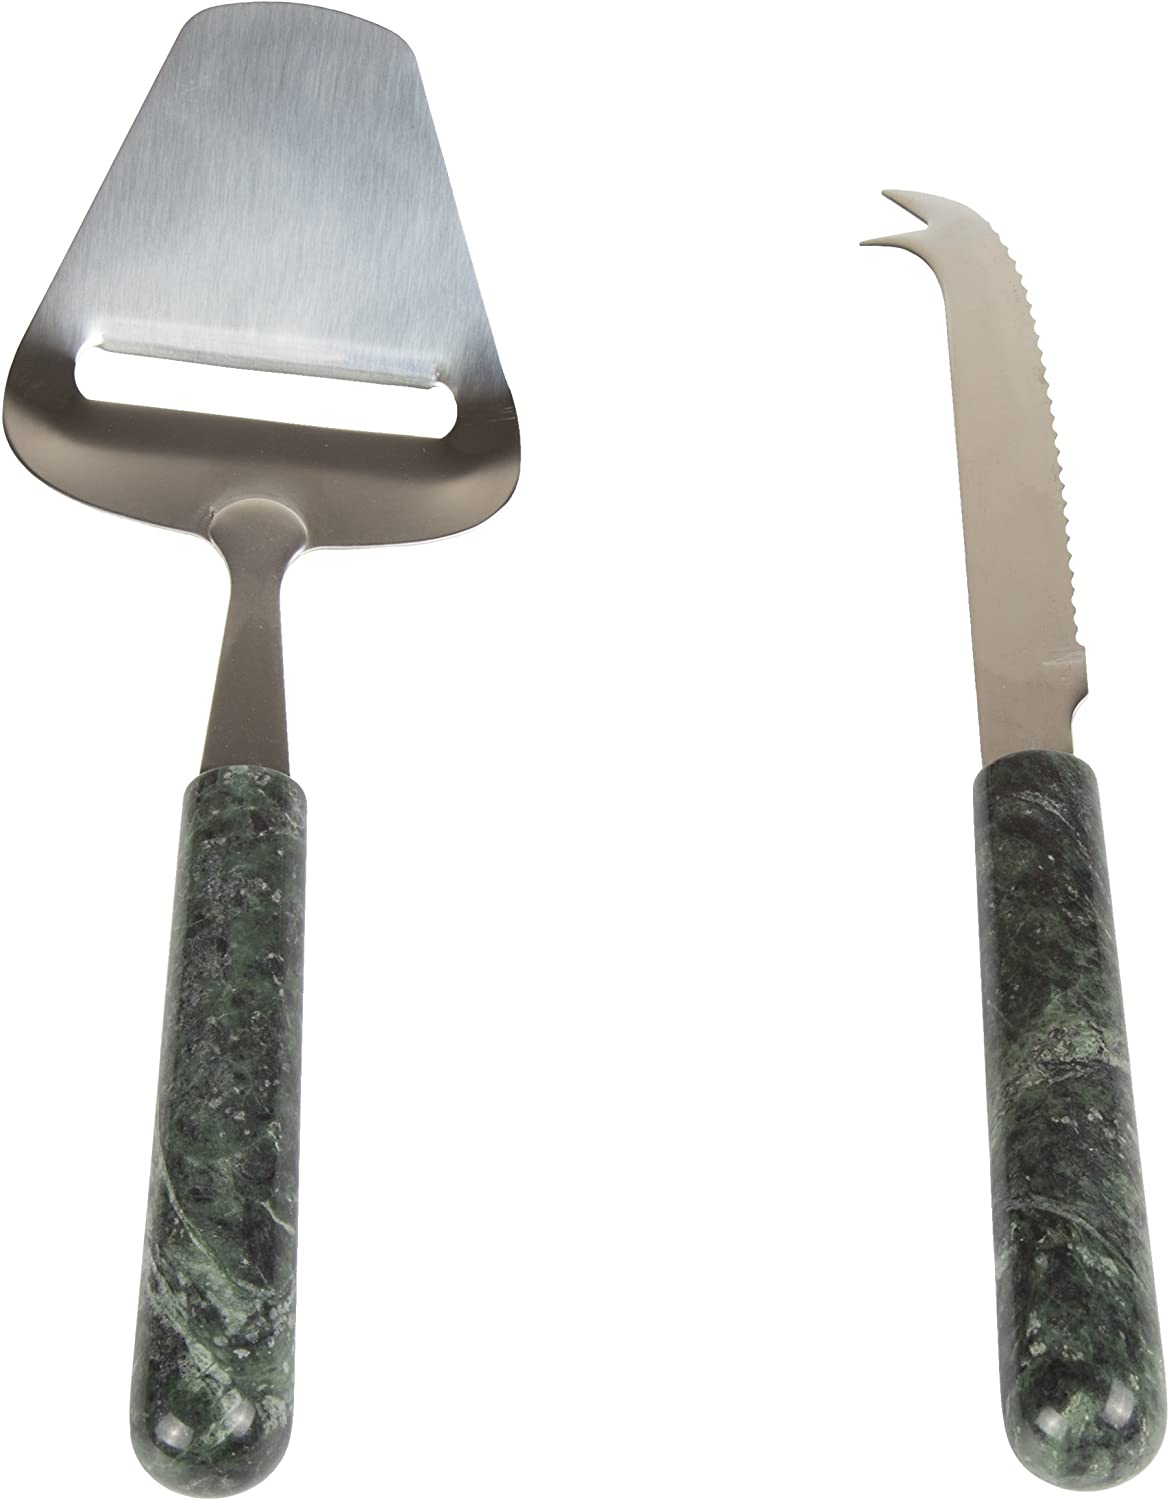 Creative Home Genuine Green Marble Stone 2 Piece Serving Set, Stainless Steel Cutter Slicer and Cheese Knife